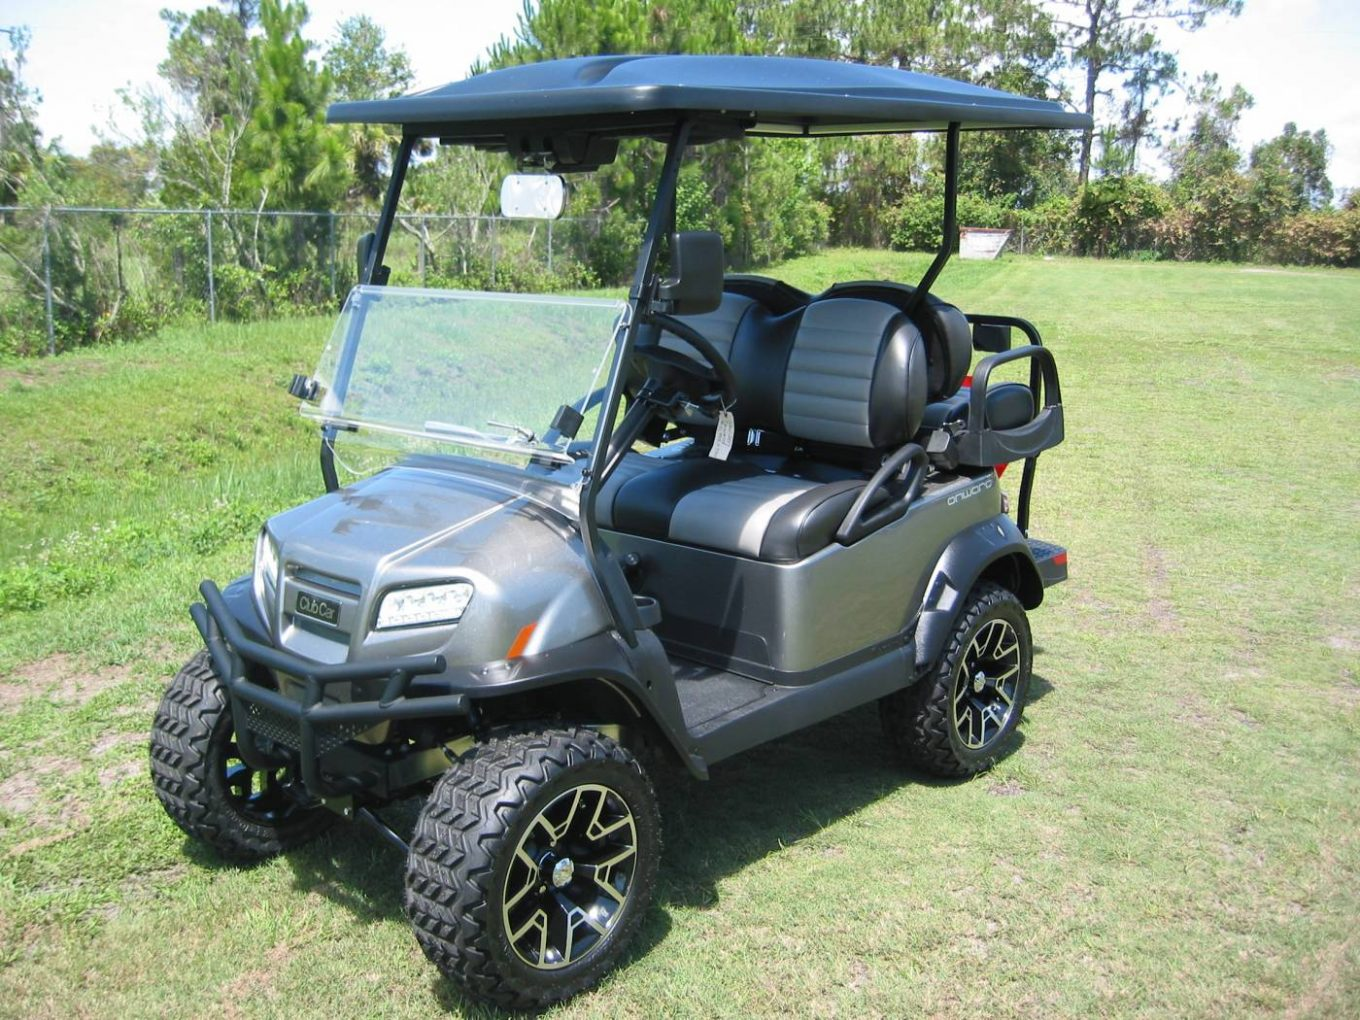 Test Drive Your Golf Carts! - Gulf Atlantic Vehicles on skid steer drive system, go cart drive system, golf cart cooling system, golf cart charging system, bobcat drive system,